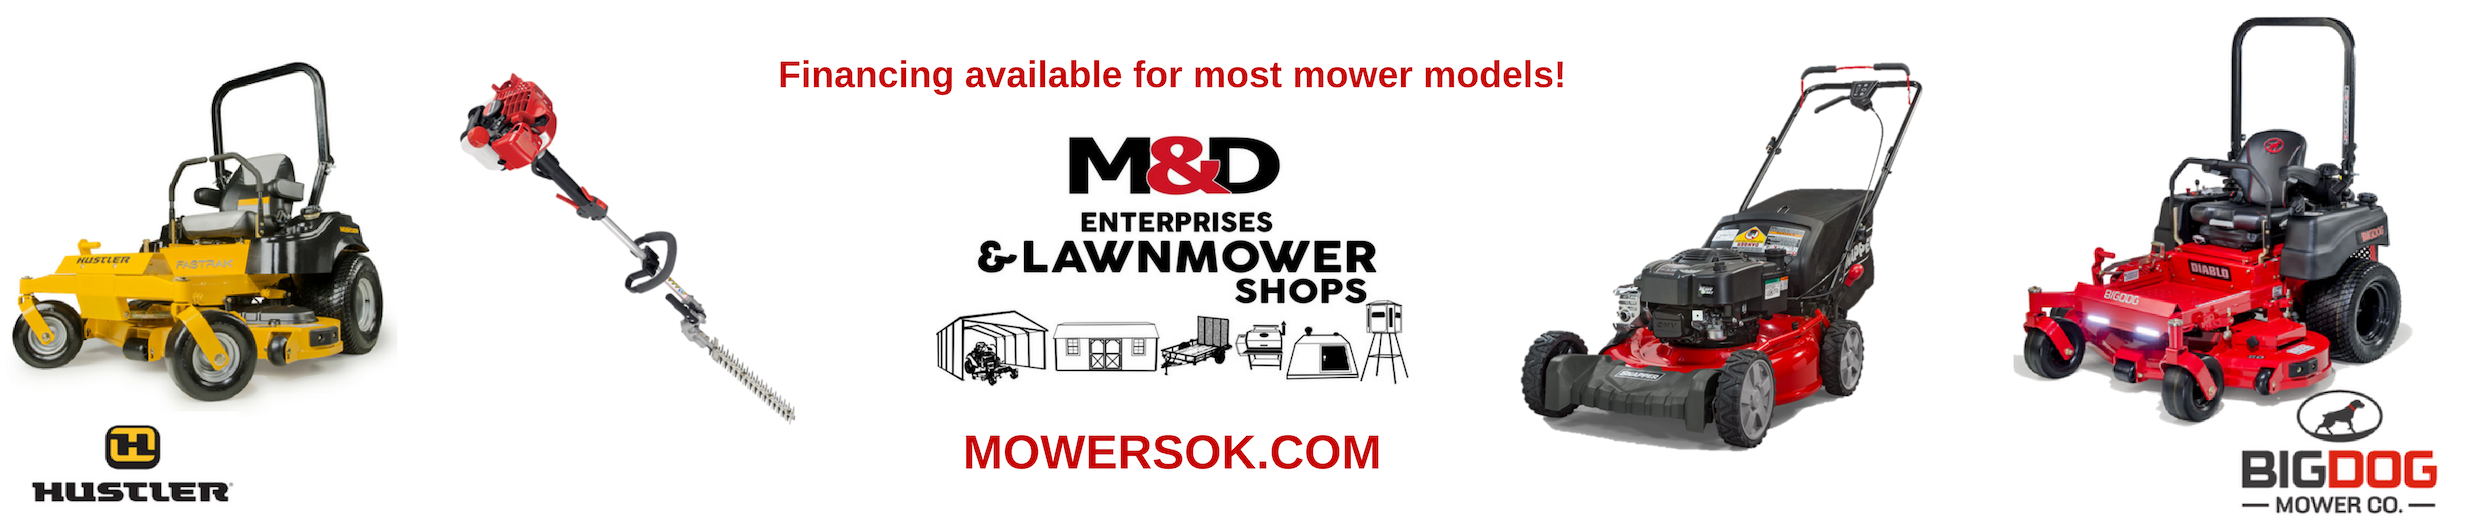 M&D Lawnmower Shops: Hustlter, Big Dog Mower Co.